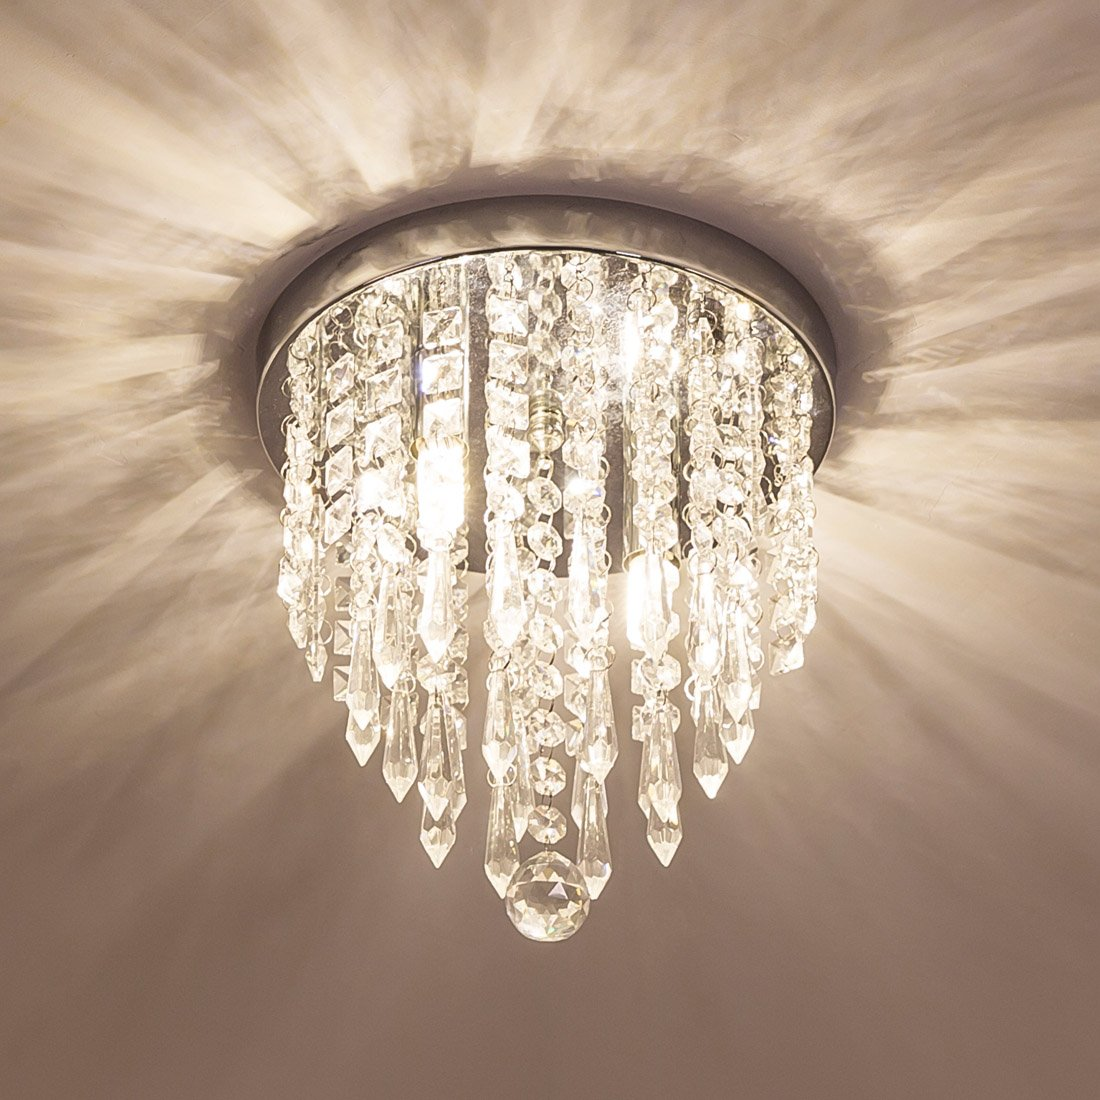 Spectacular Lifeholder Mini Chandelier Crystal Chandelier Lighting Lights Flush Mount Ceiling Light